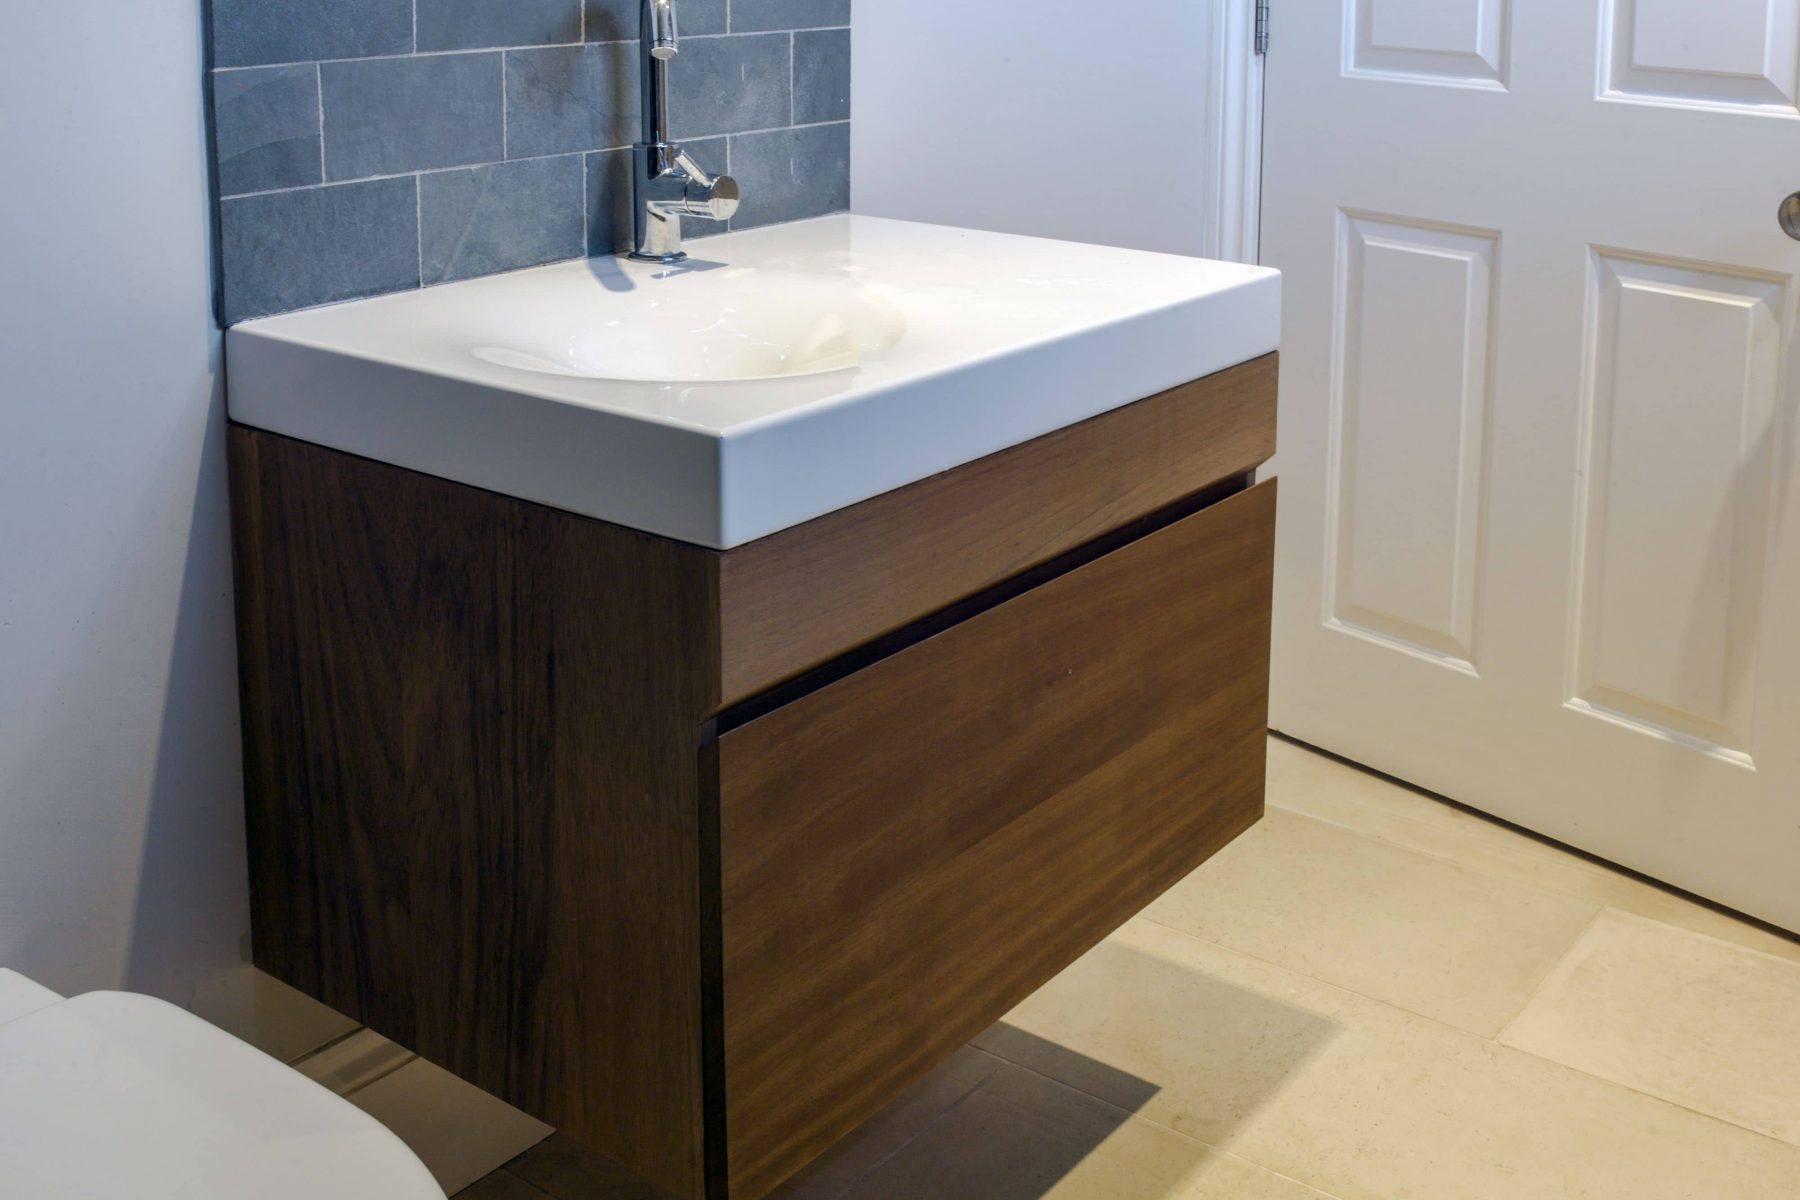 Modern cube bathroom sink